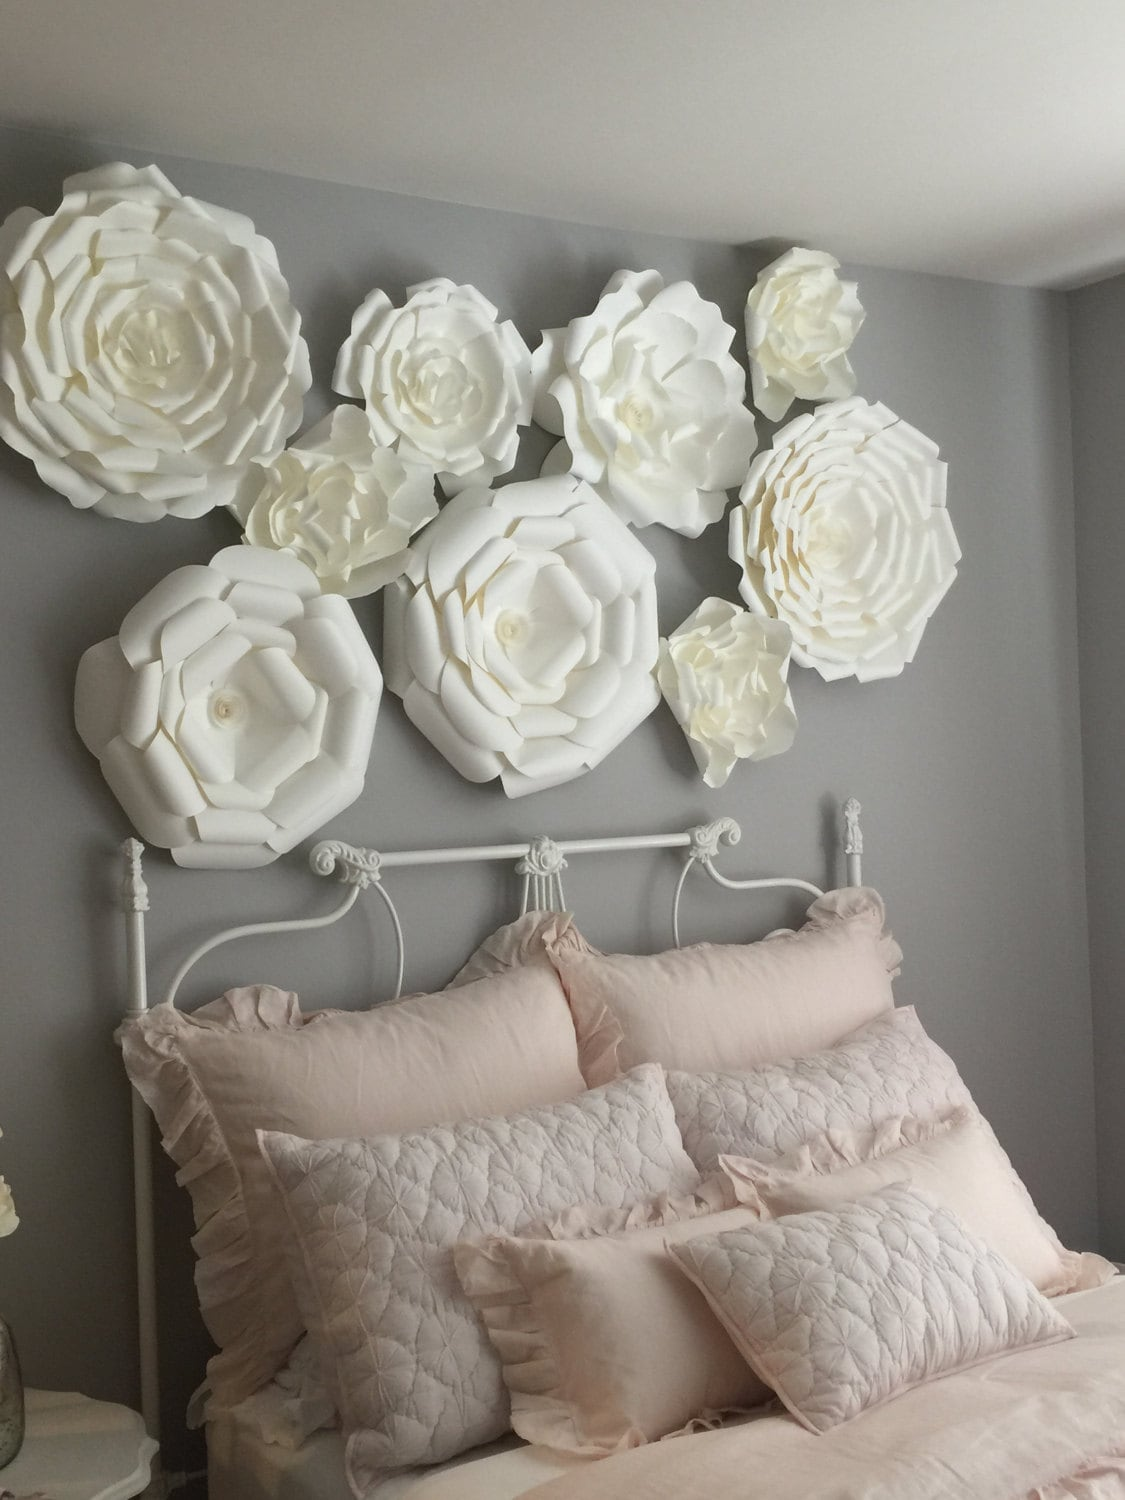 3x3ft Paper Flower Backdrop Giant Paper Flowers Wall Paper